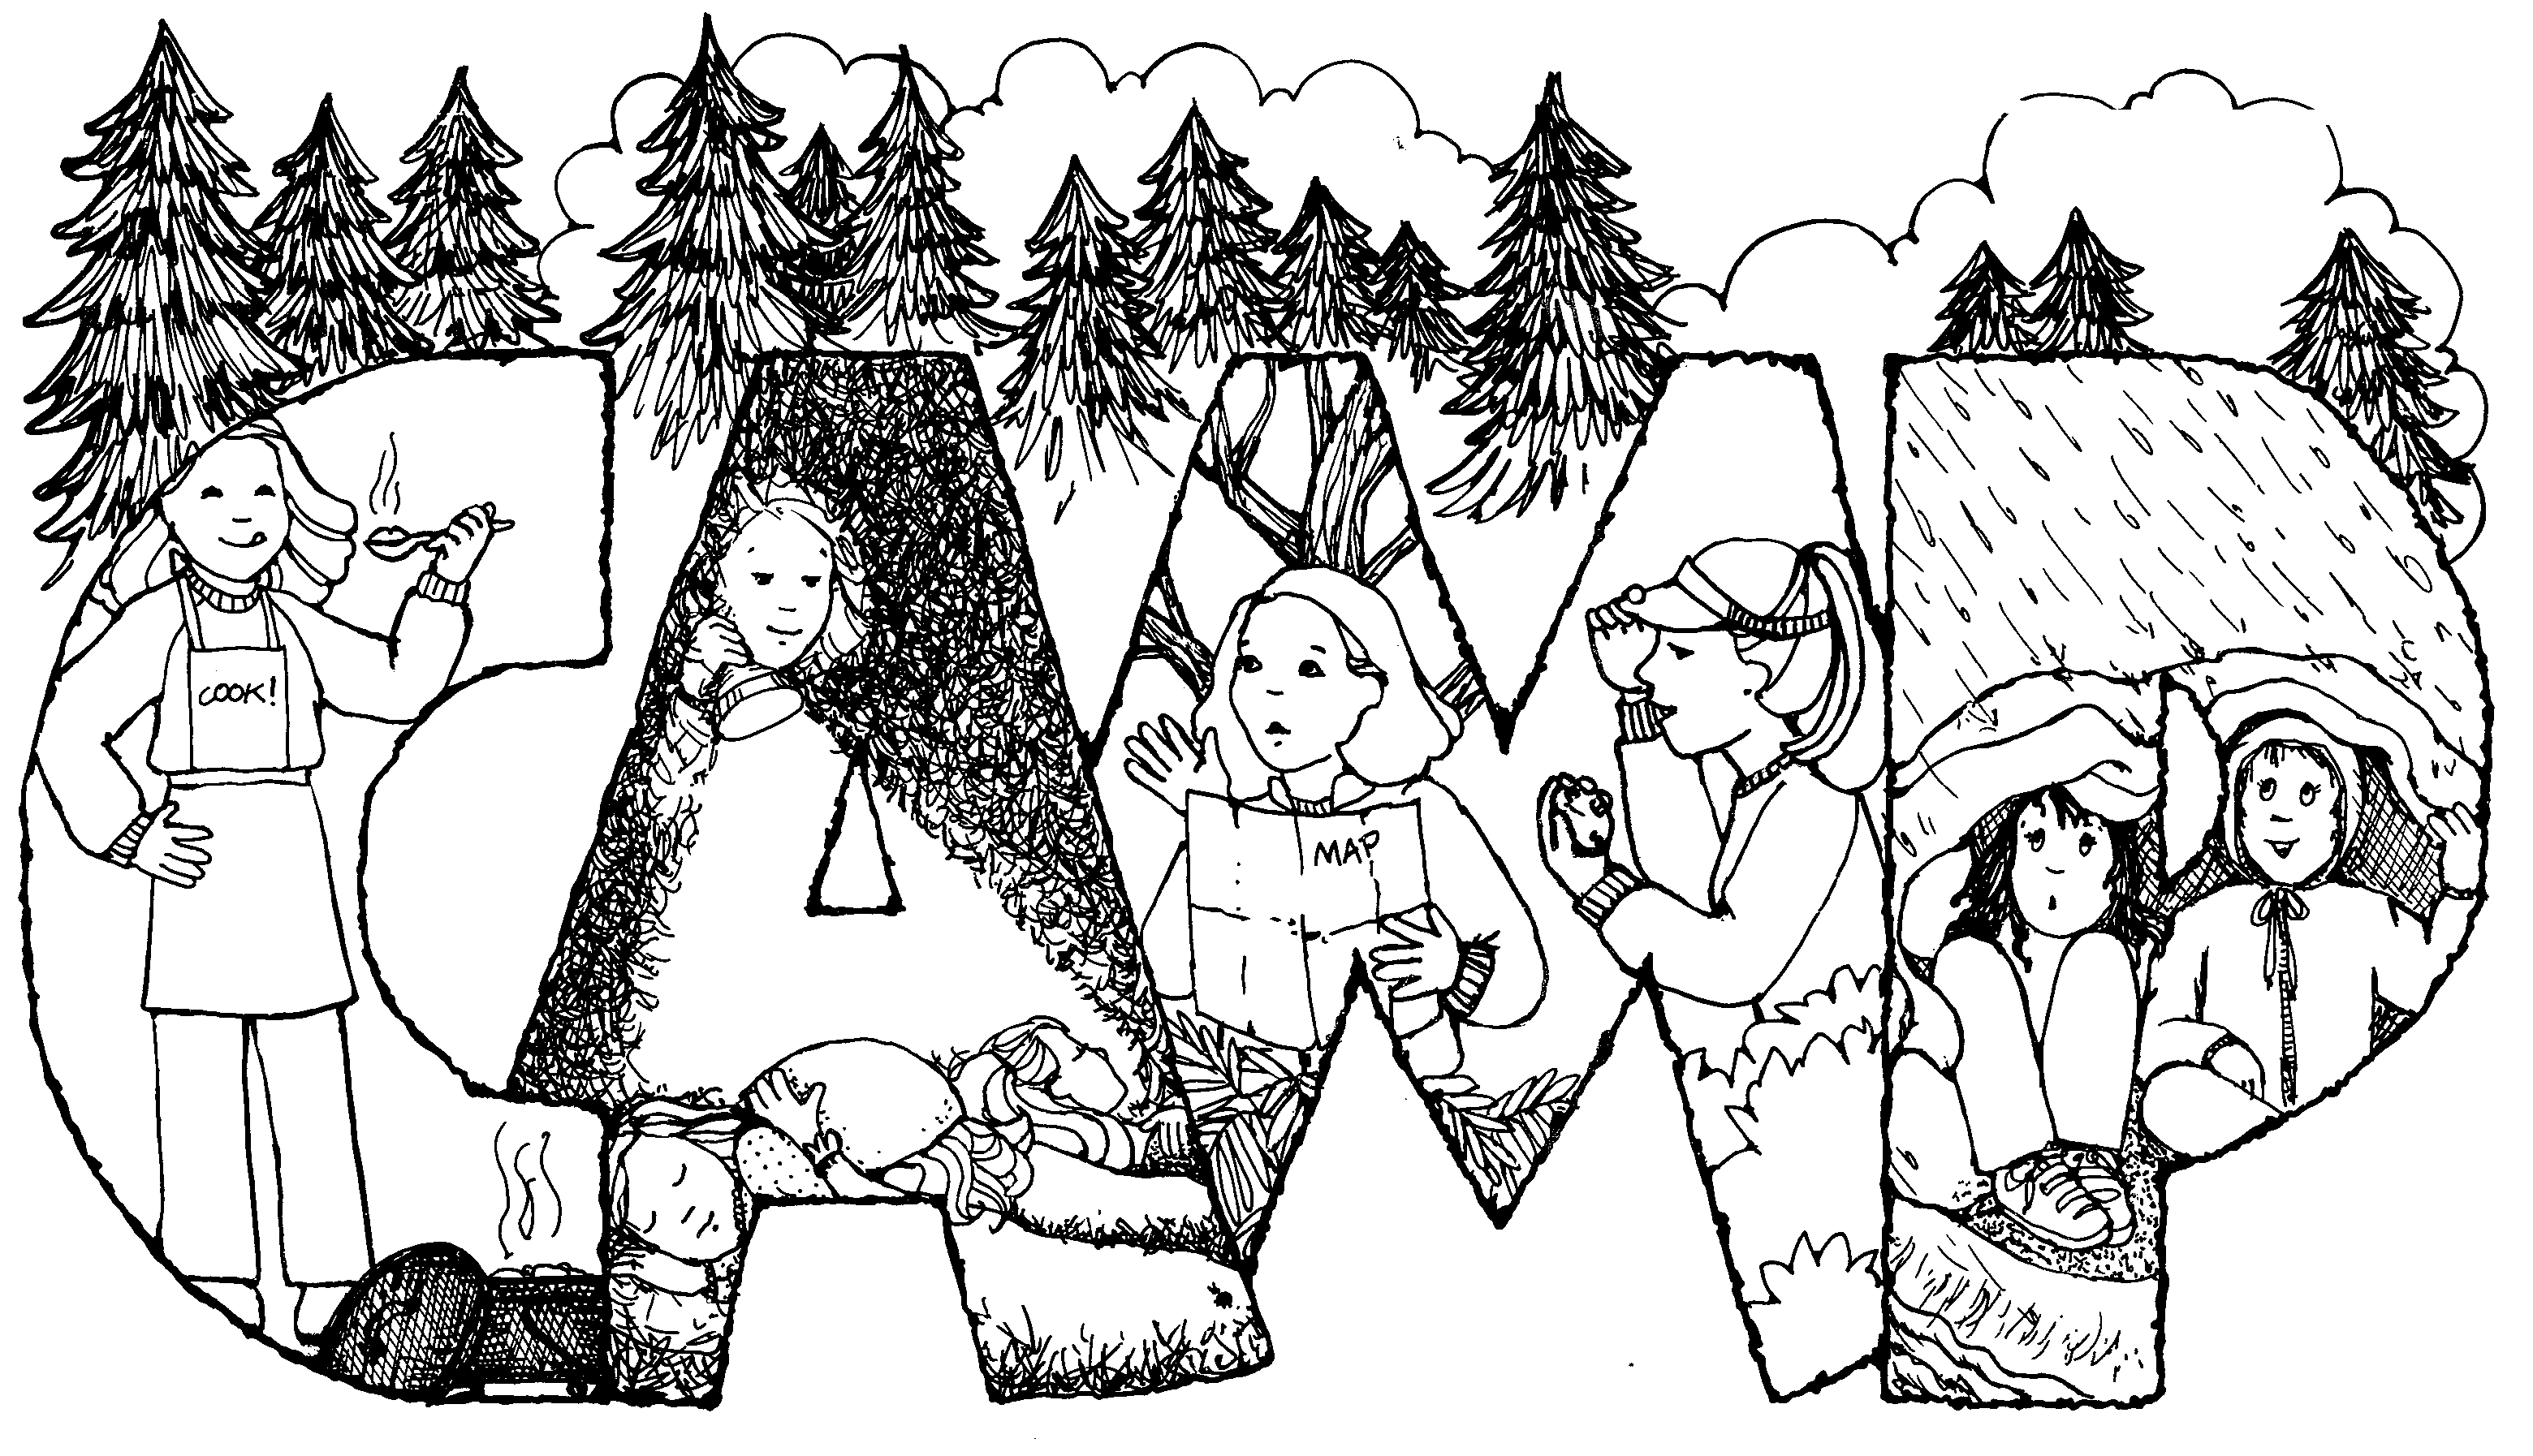 Camp 2 jenny smith 39 s lds ideas bookstore for Free drawing sites